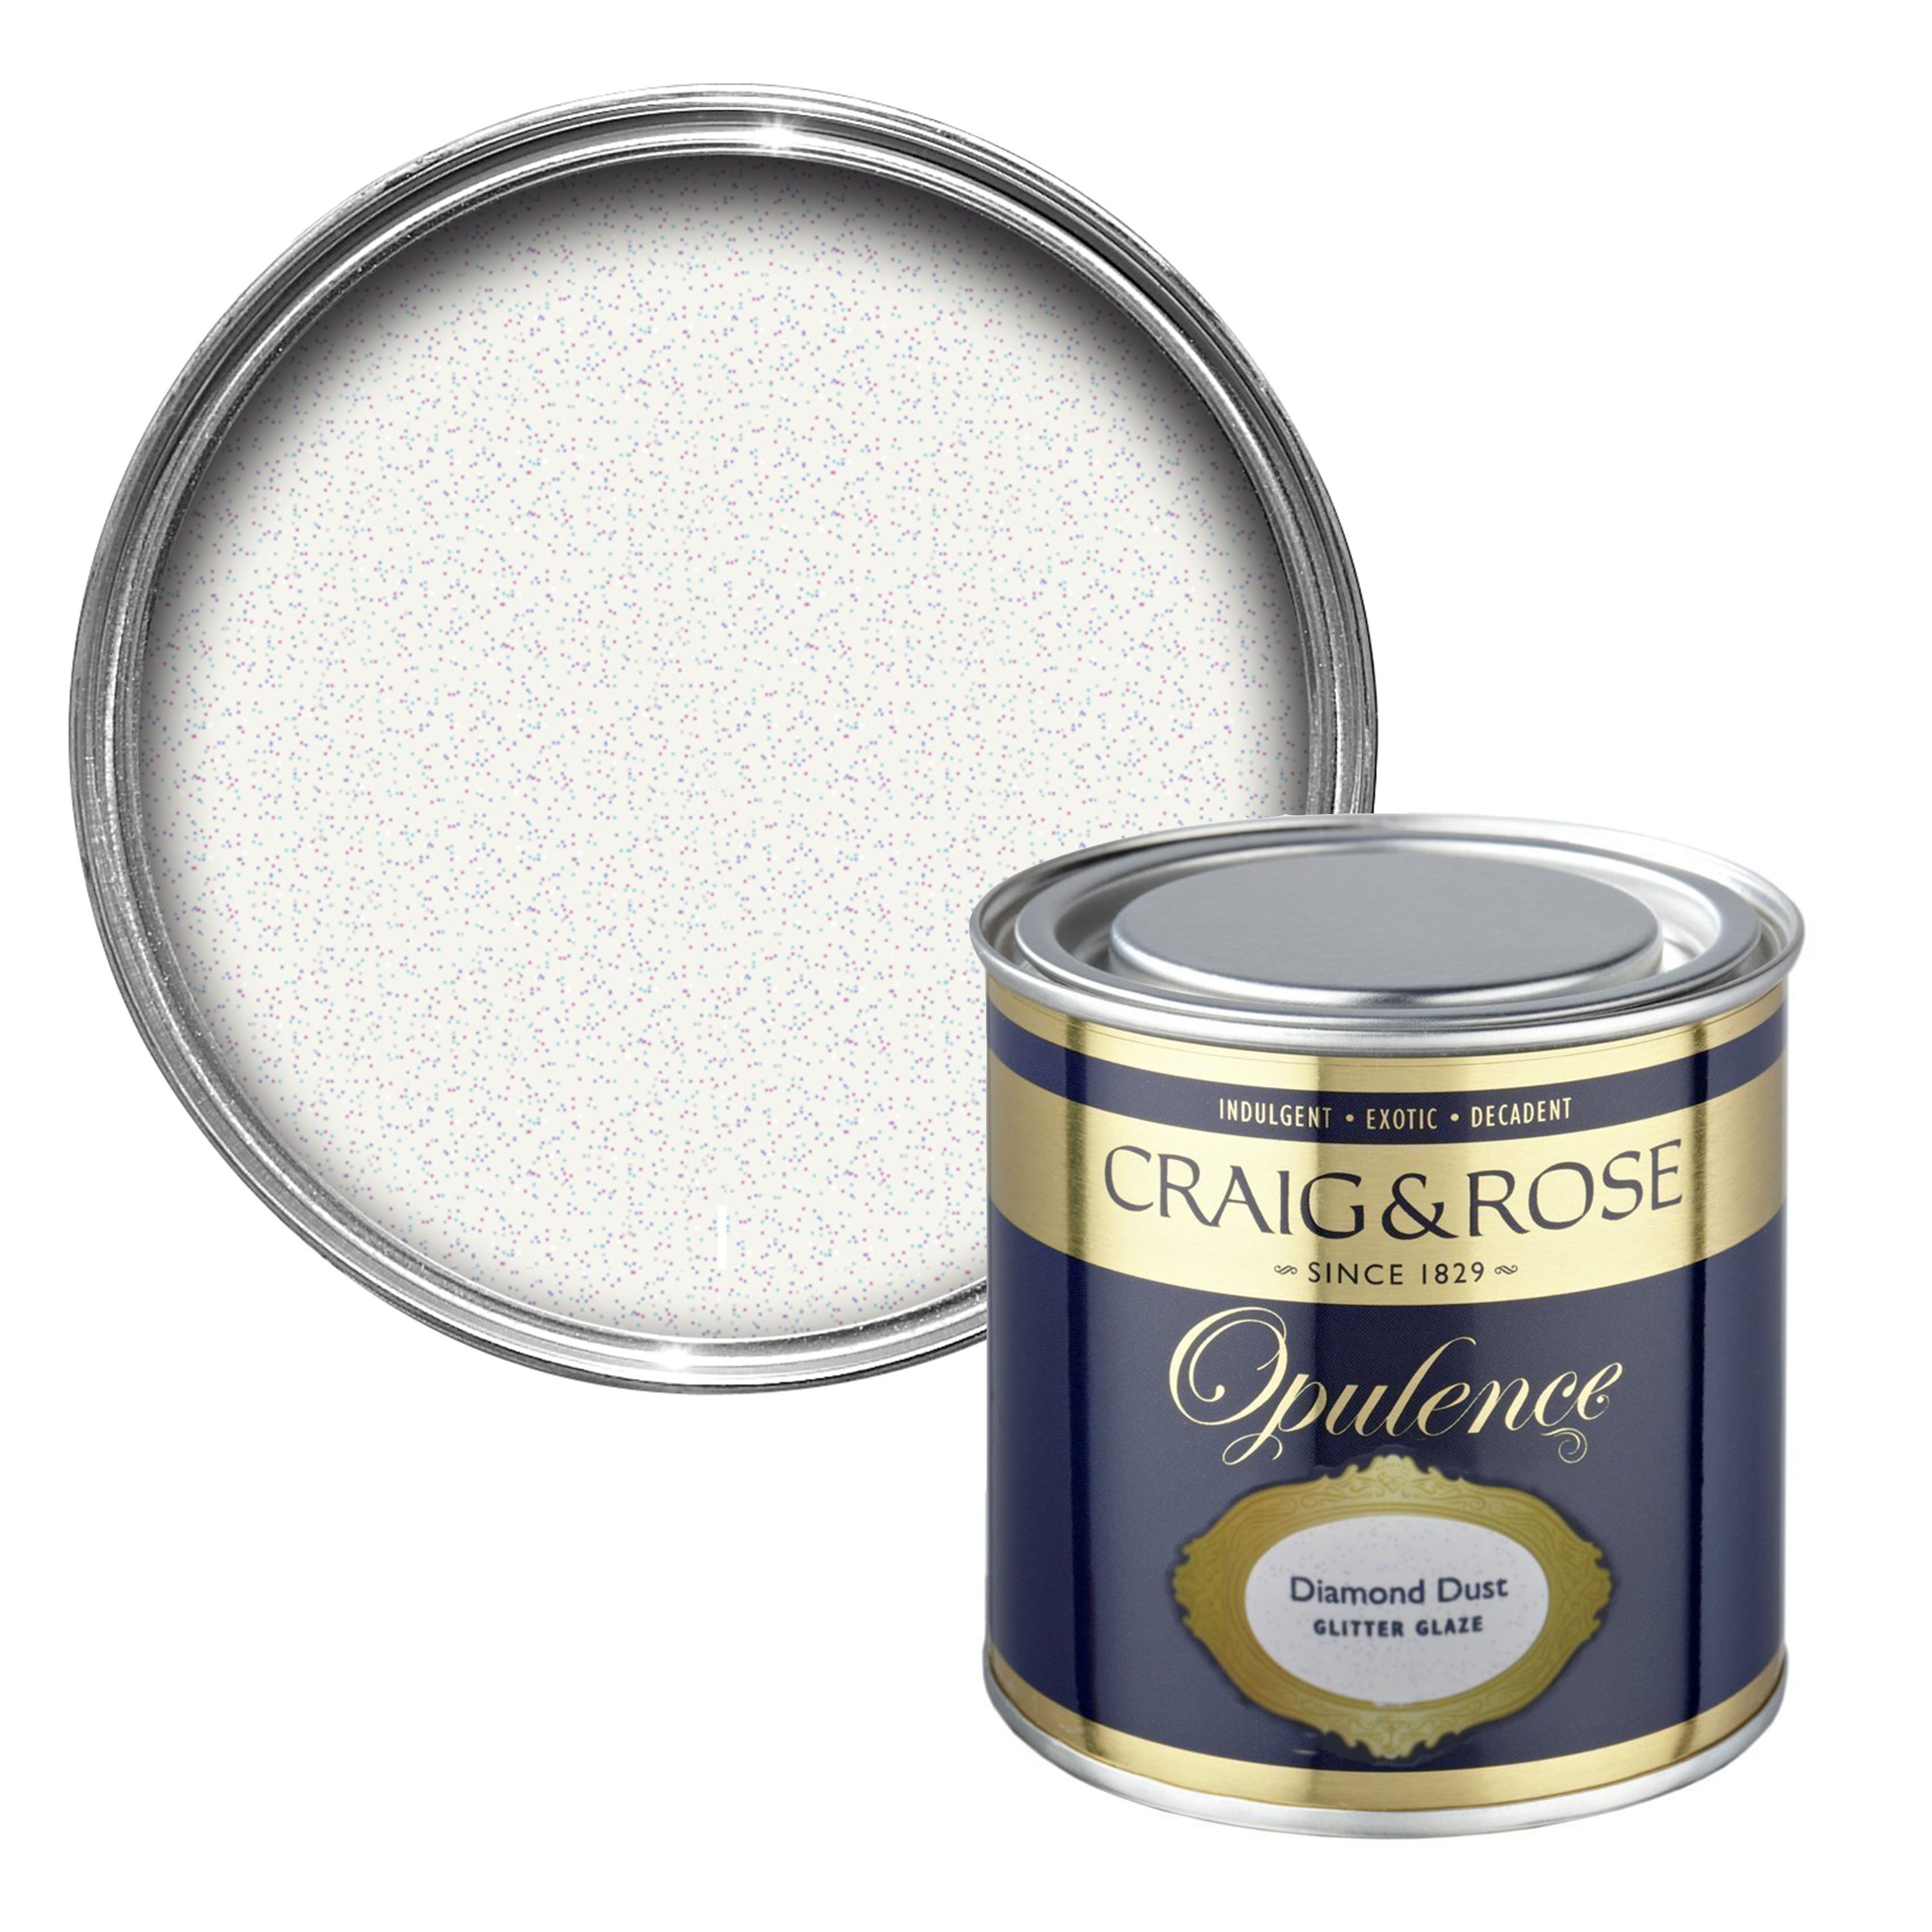 Craig Rose 1829 Kitchen Bathroom Paint: Craig & Rose Opulence Diamond Dust Glitter Effect Special